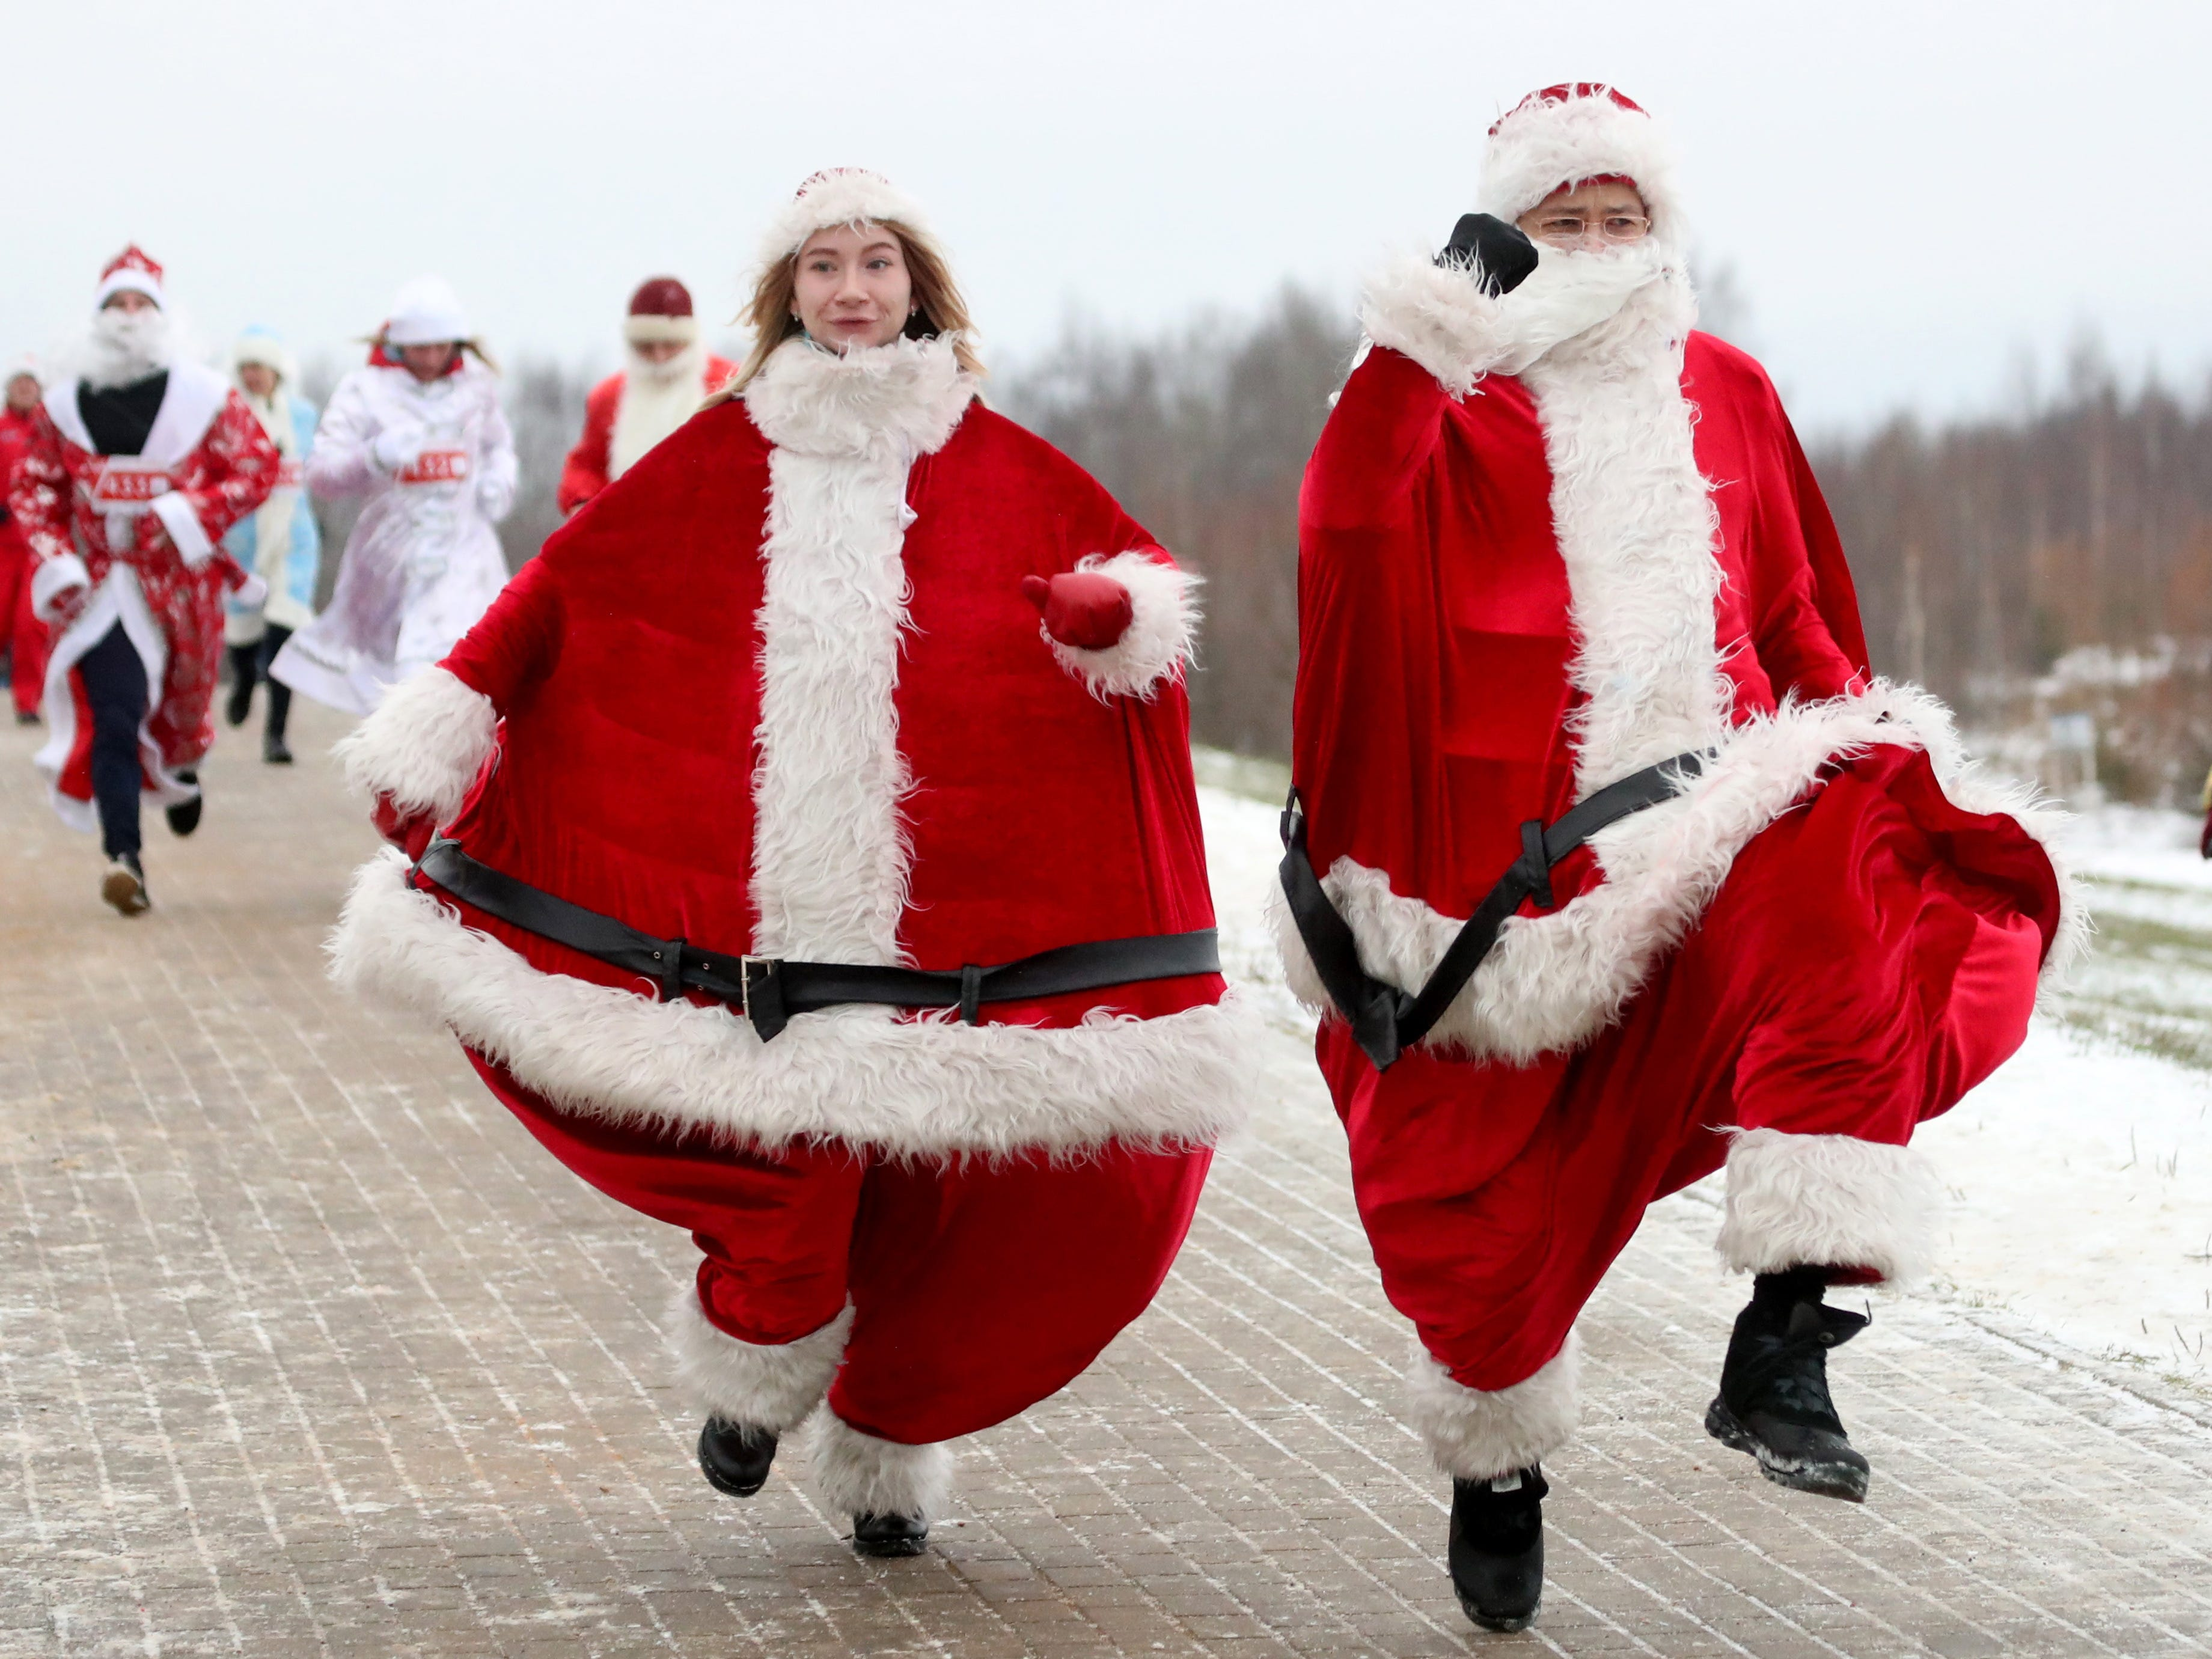 Participants dressed as Santa Clauses during the Santa Run in Minsk, Belarus on Dec. 15, 2018. More than 300 participants took part in the first Santa Run doing  distances of 5, 10 and 15 kilometers.